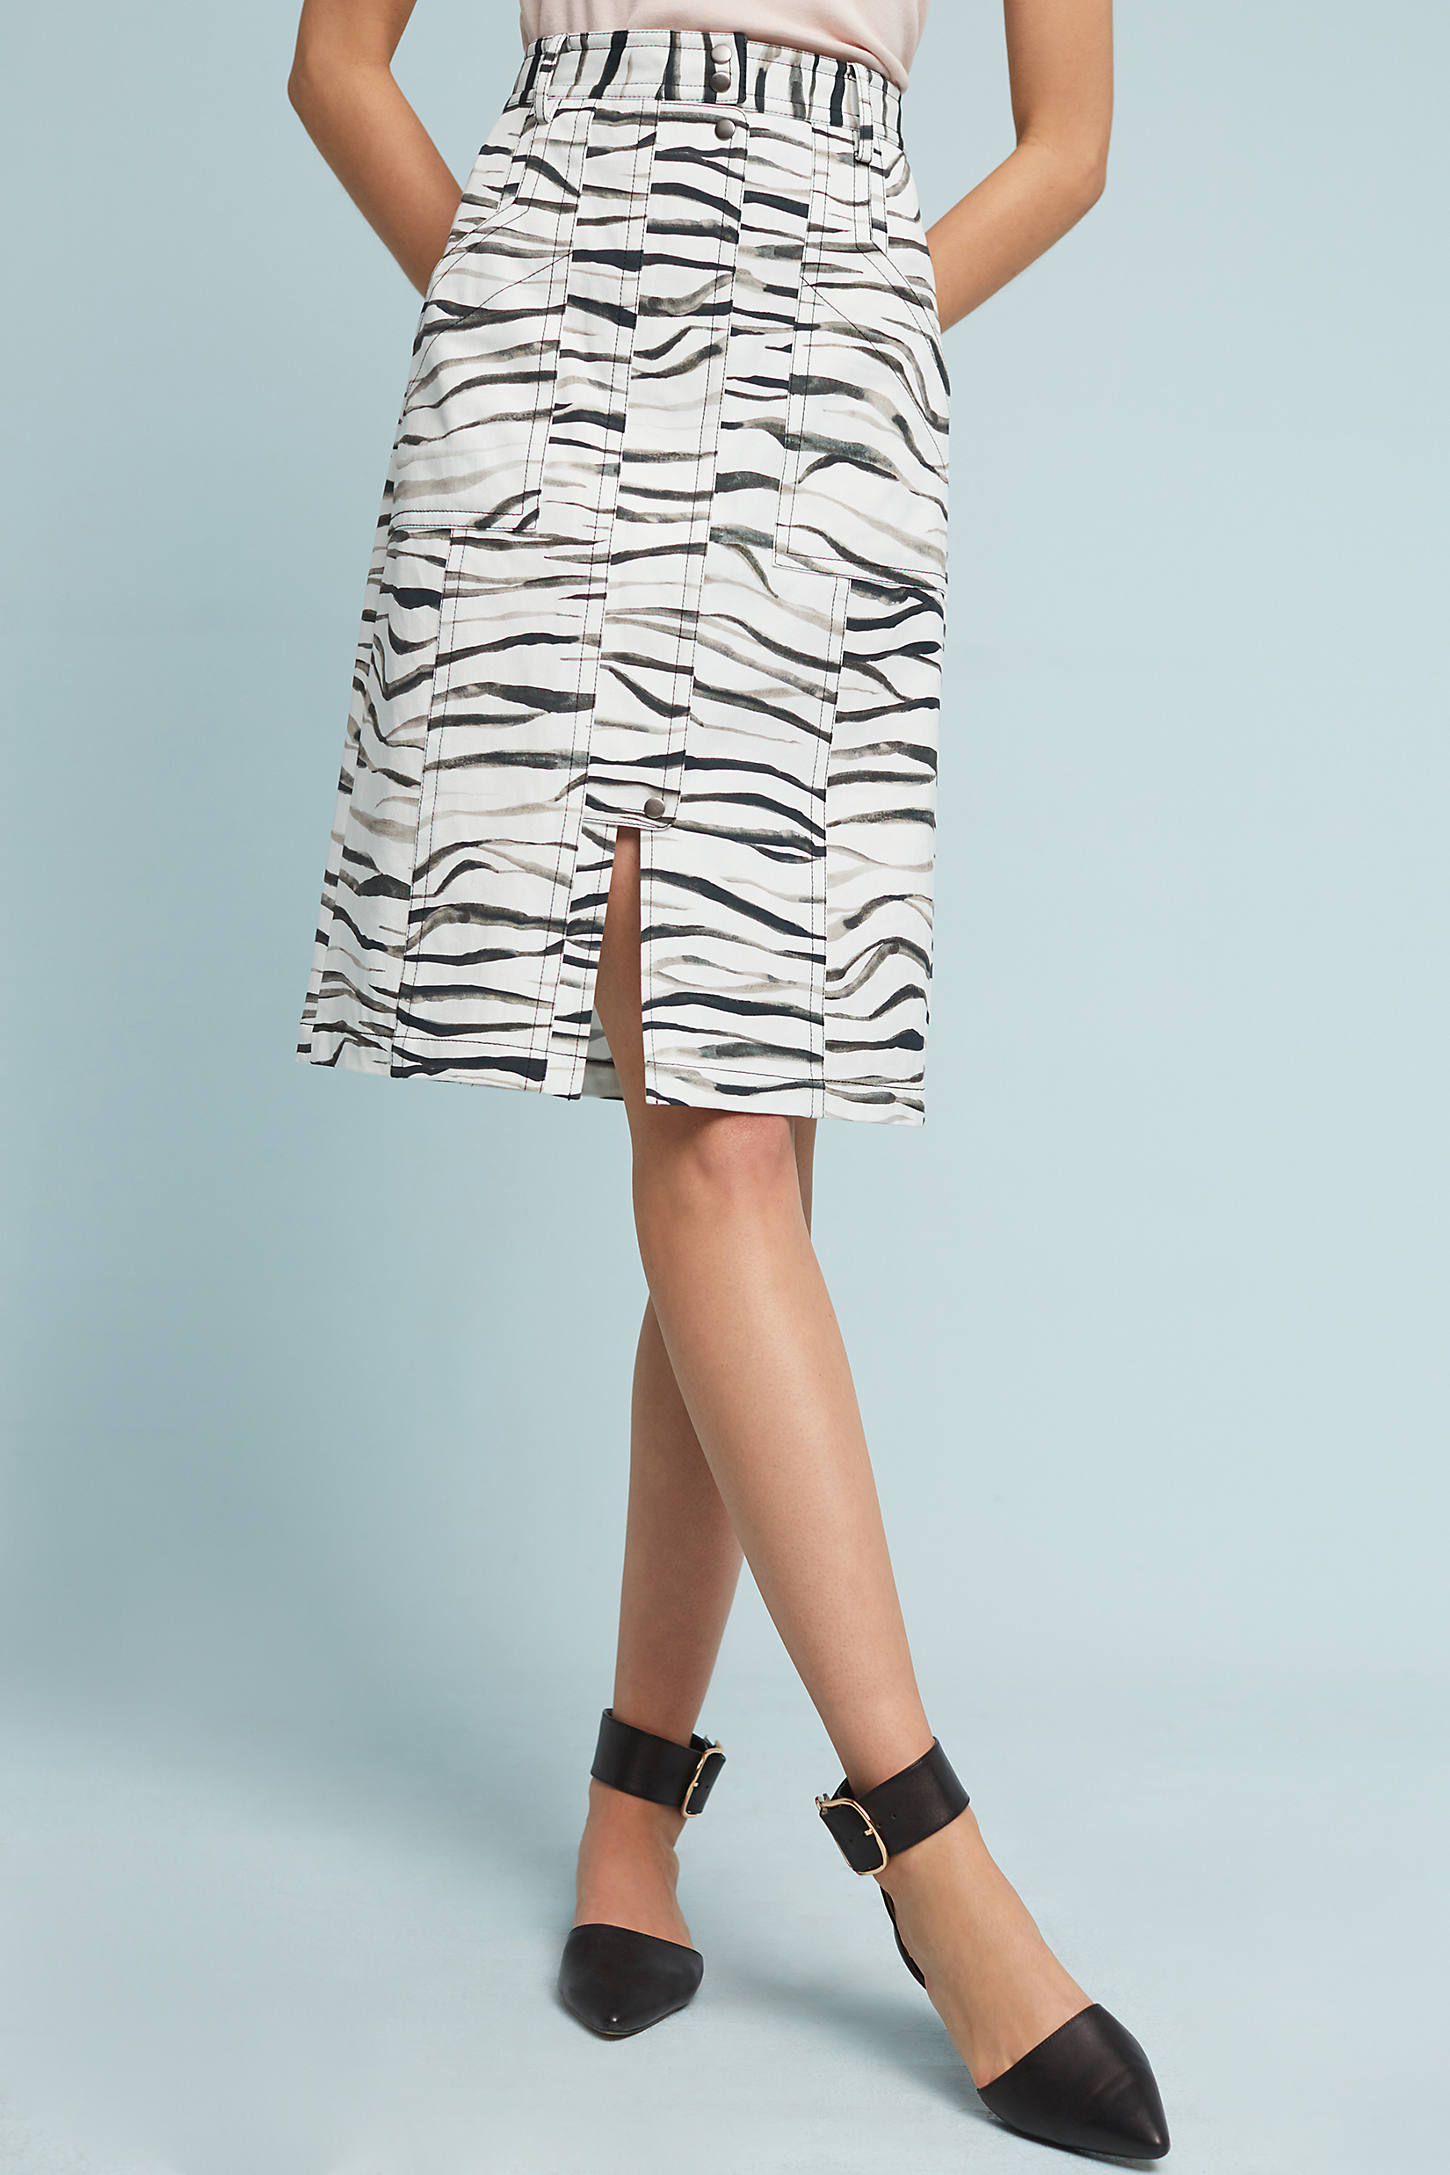 Zebra-Printed Skirt